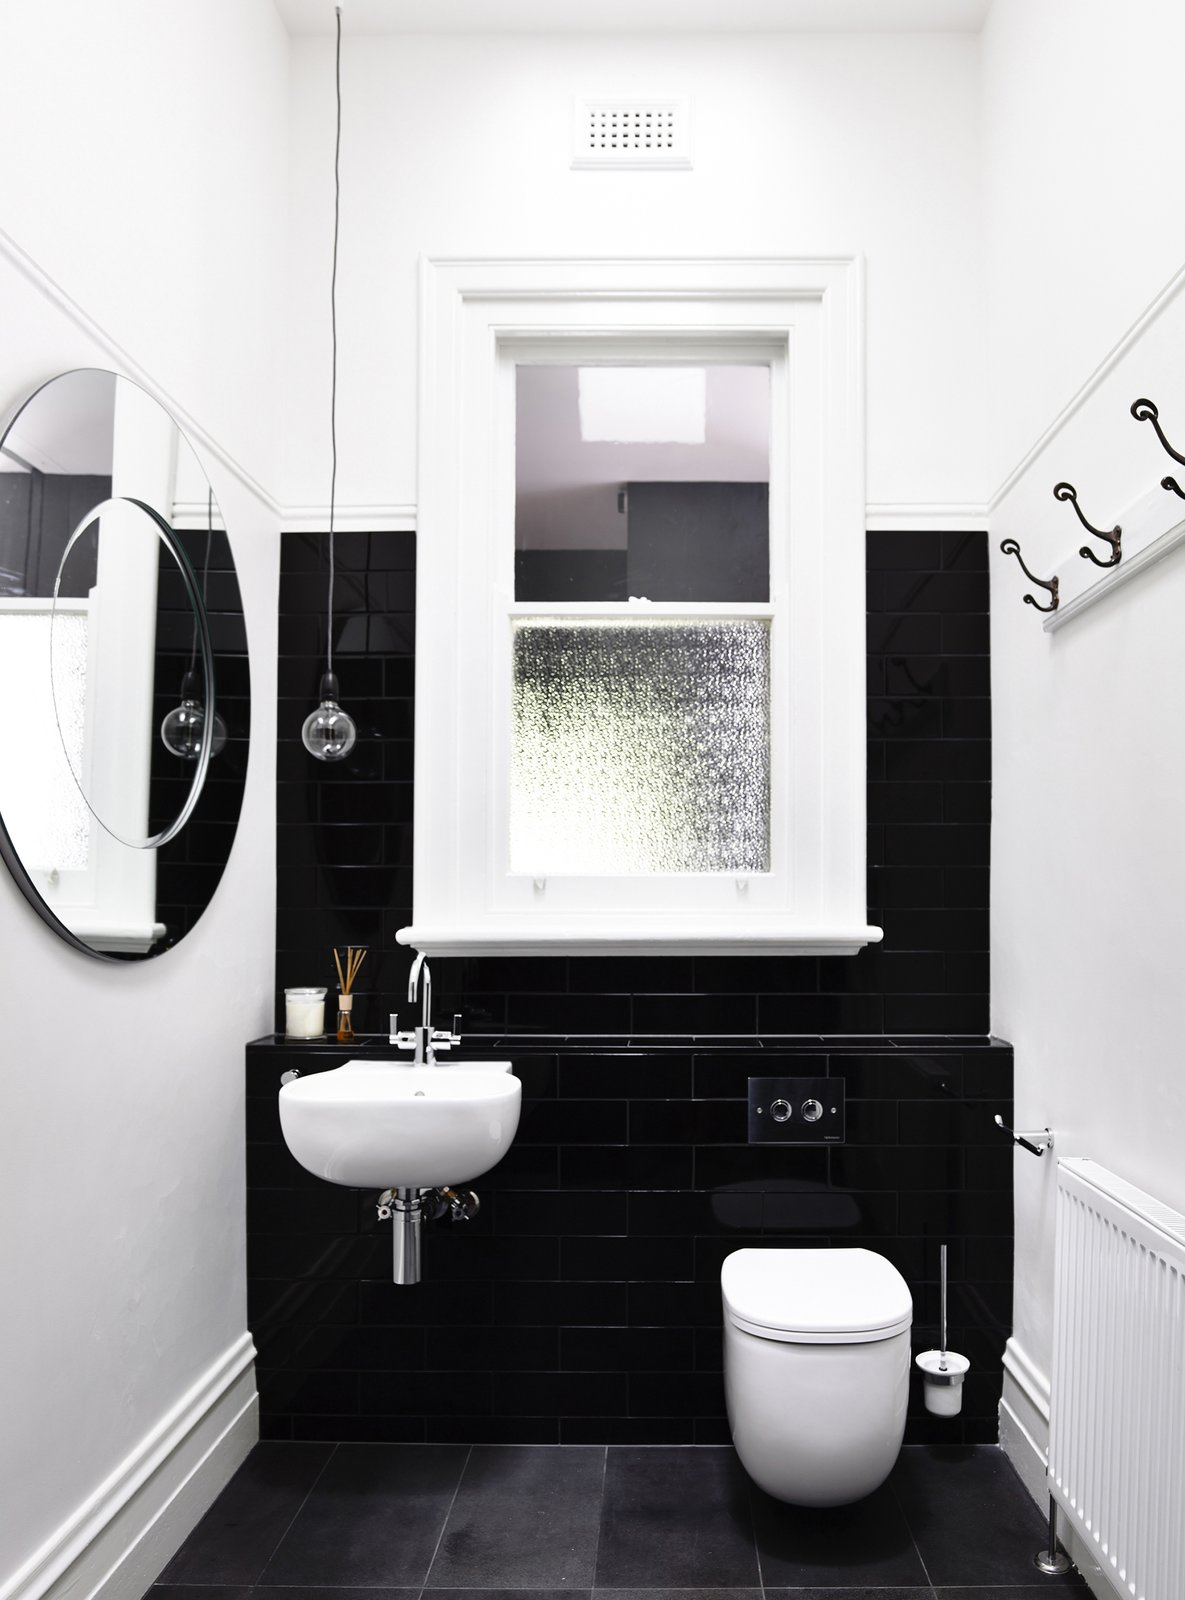 Tagged: Bath Room, Subway Tile Wall, and Wall Mount Sink. Old Meets New in This Modern Extension to an Edwardian House in Melbourne - Photo 4 of 10